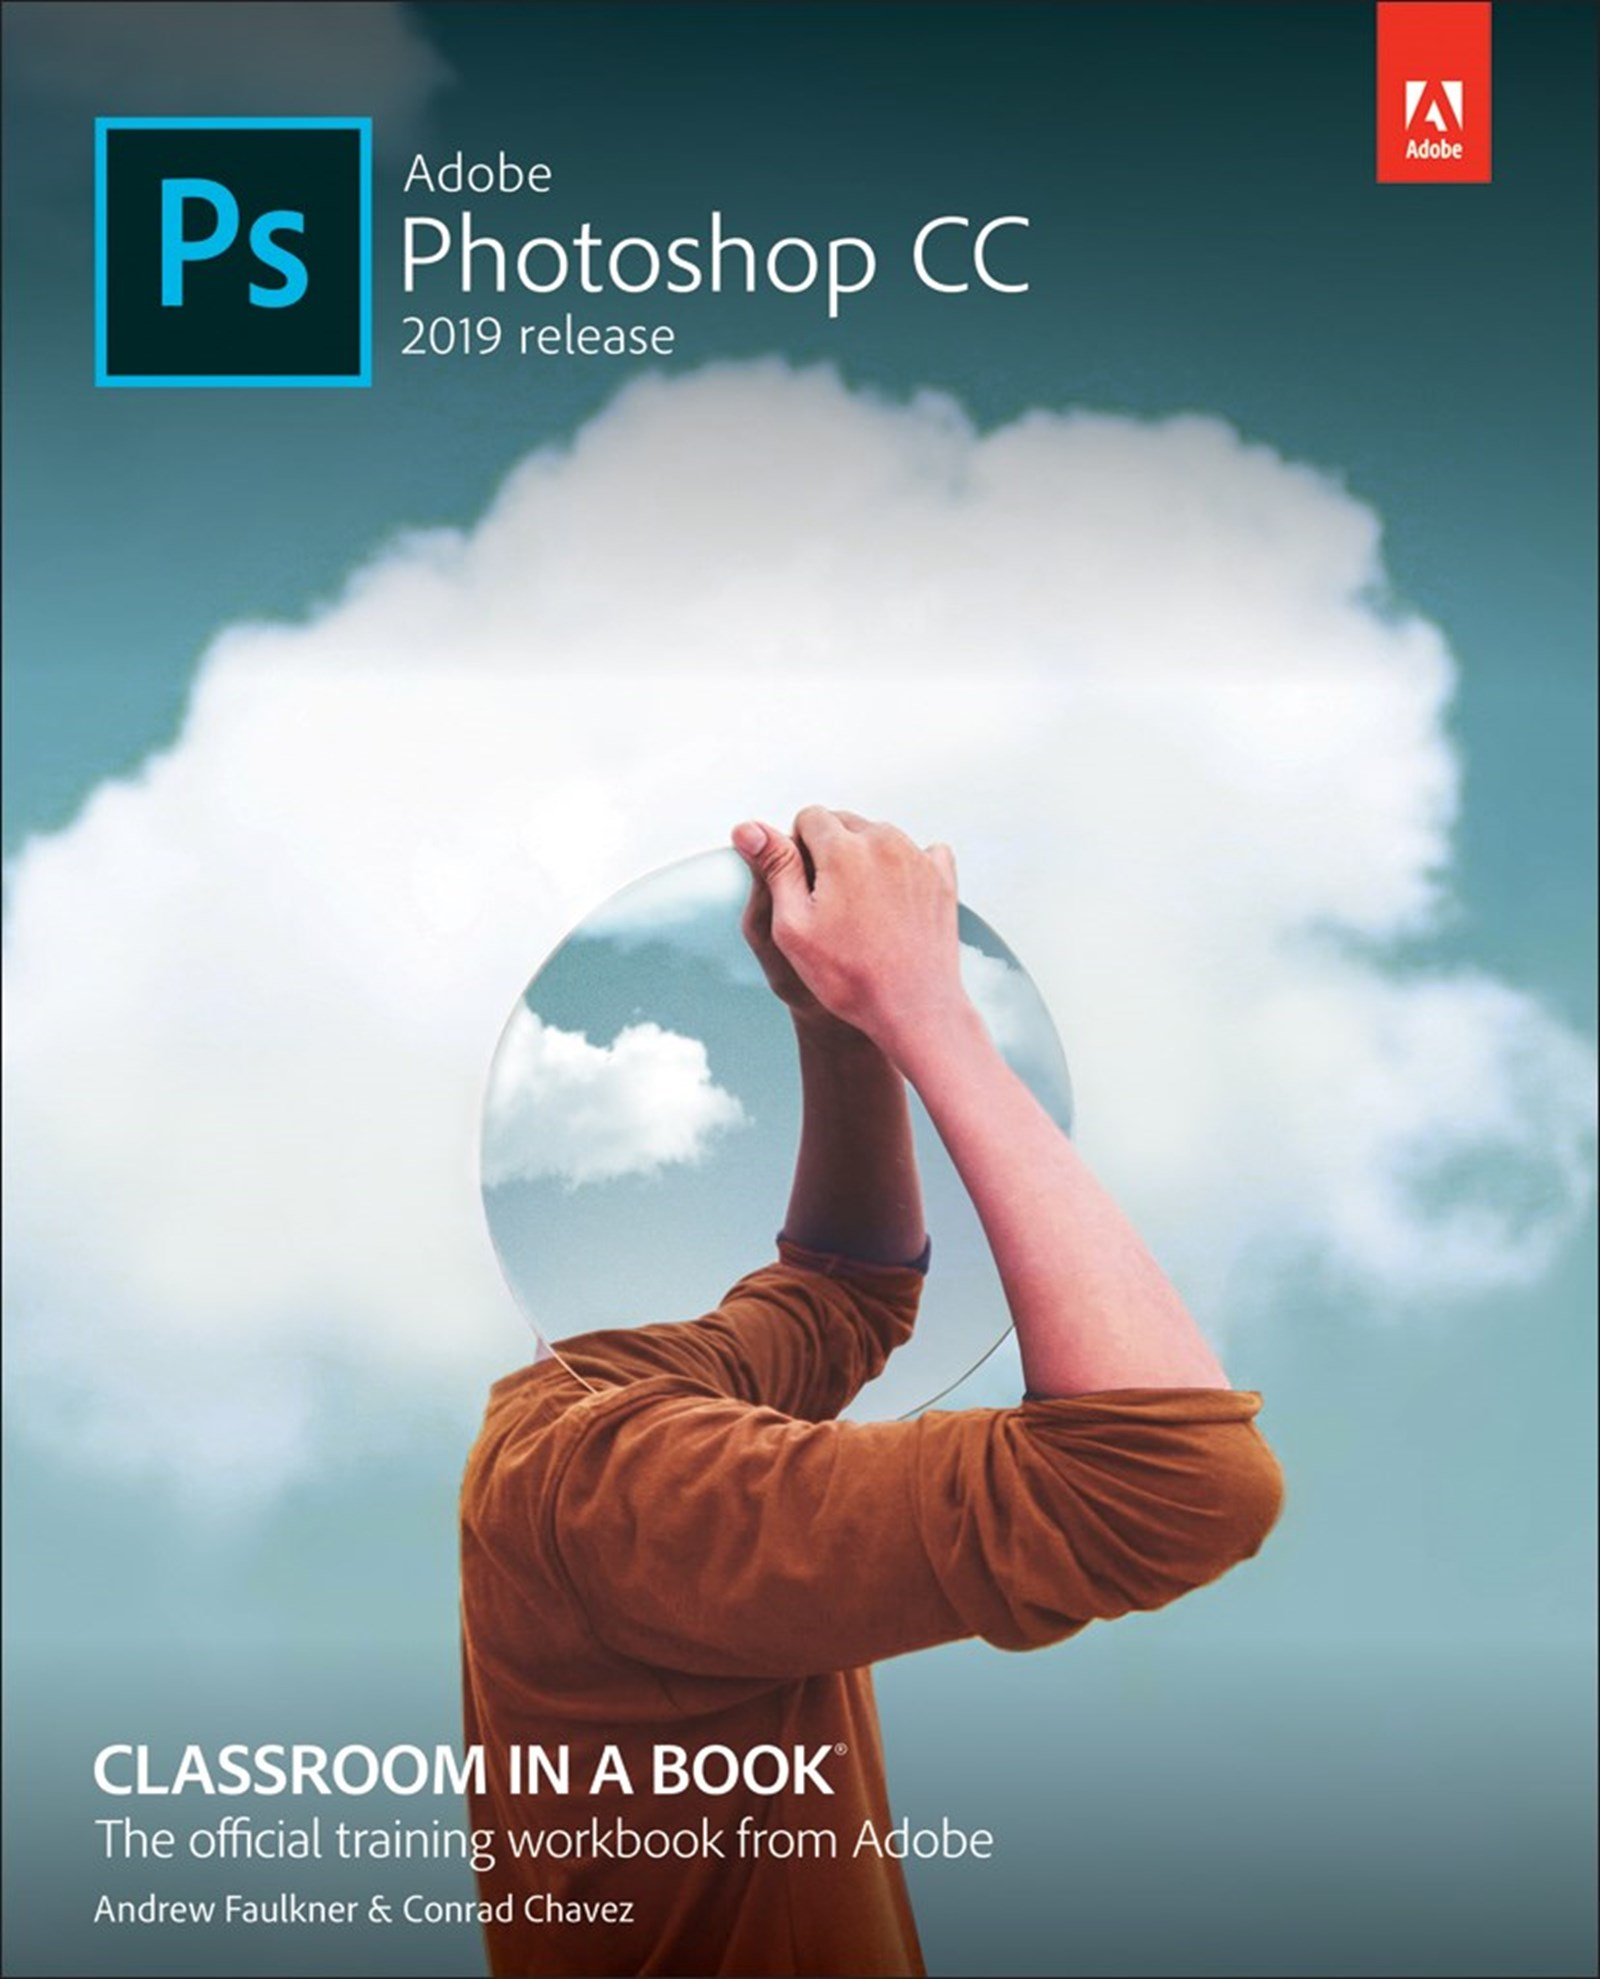 adobe-photoshop-classroom-in-a-book-2019.jpg